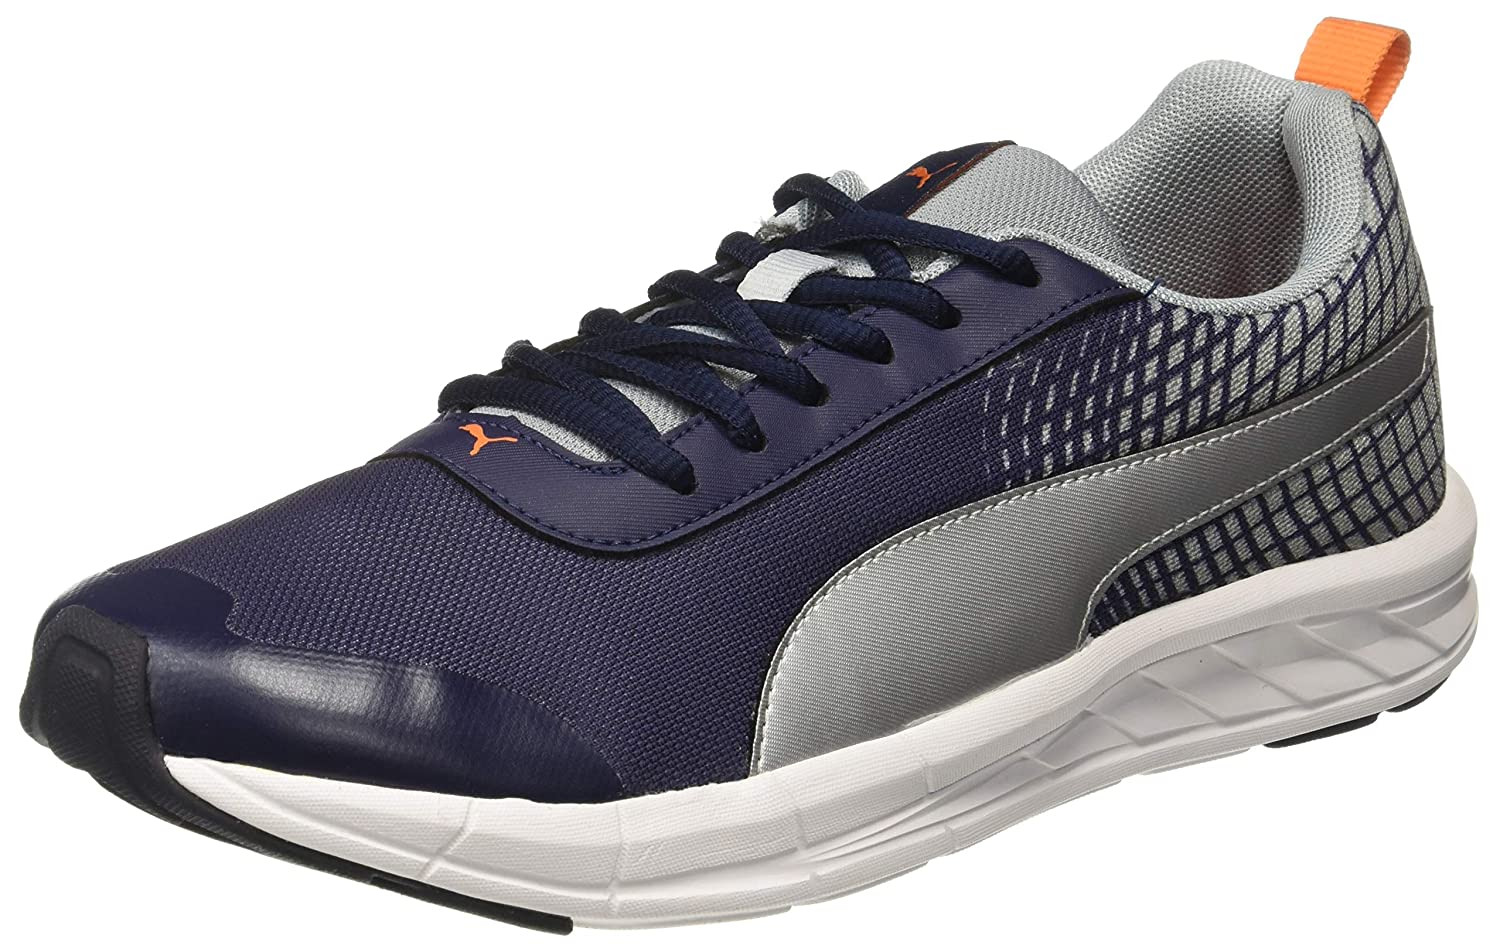 c4ef6cbd04b5 Puma Men s Supernal Nu 2 Idp Running Shoes  Buy Online at Low Prices in  India - Amazon.in